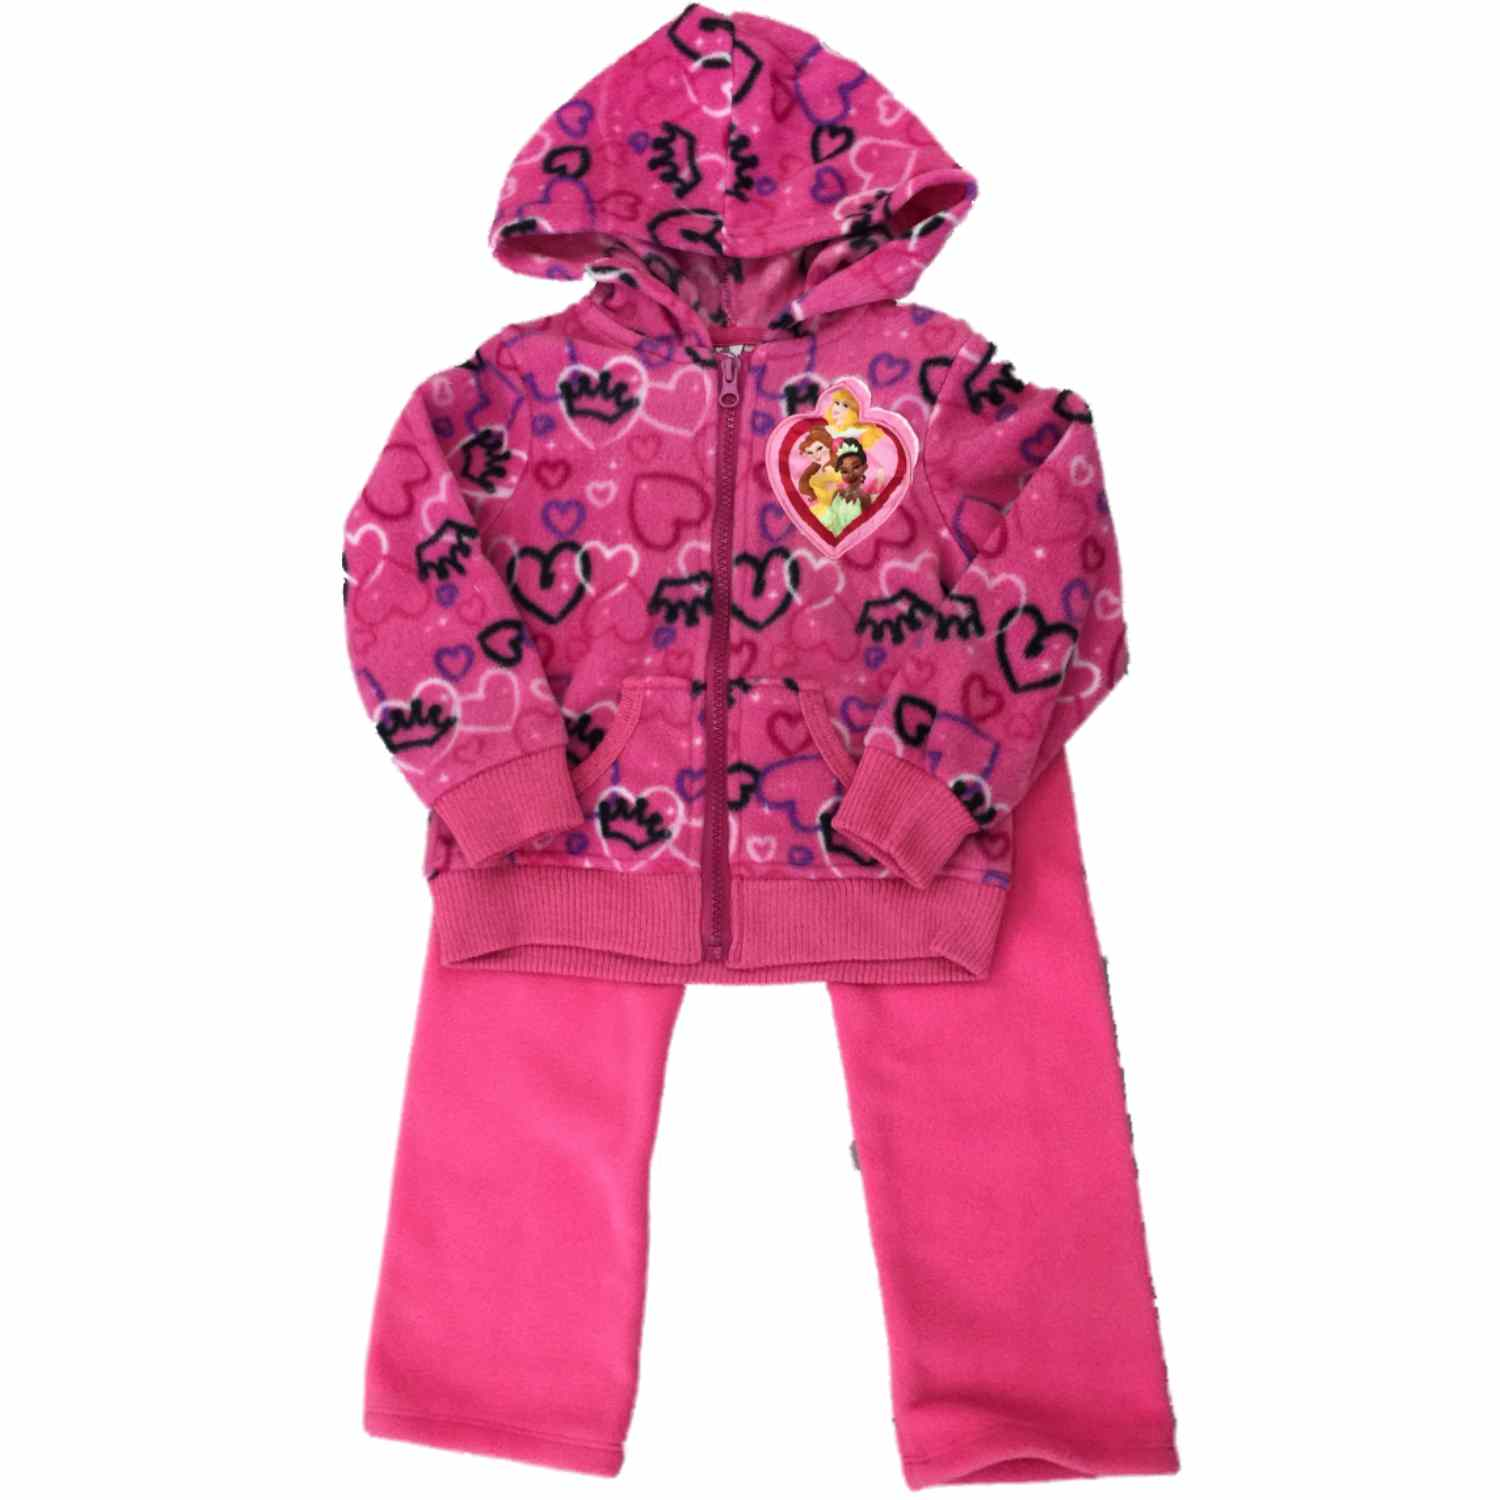 Infant Toddler Disney Princess Girls Fleece Jogger Hoddie Sweatsuit Outfit  - Size - 3T